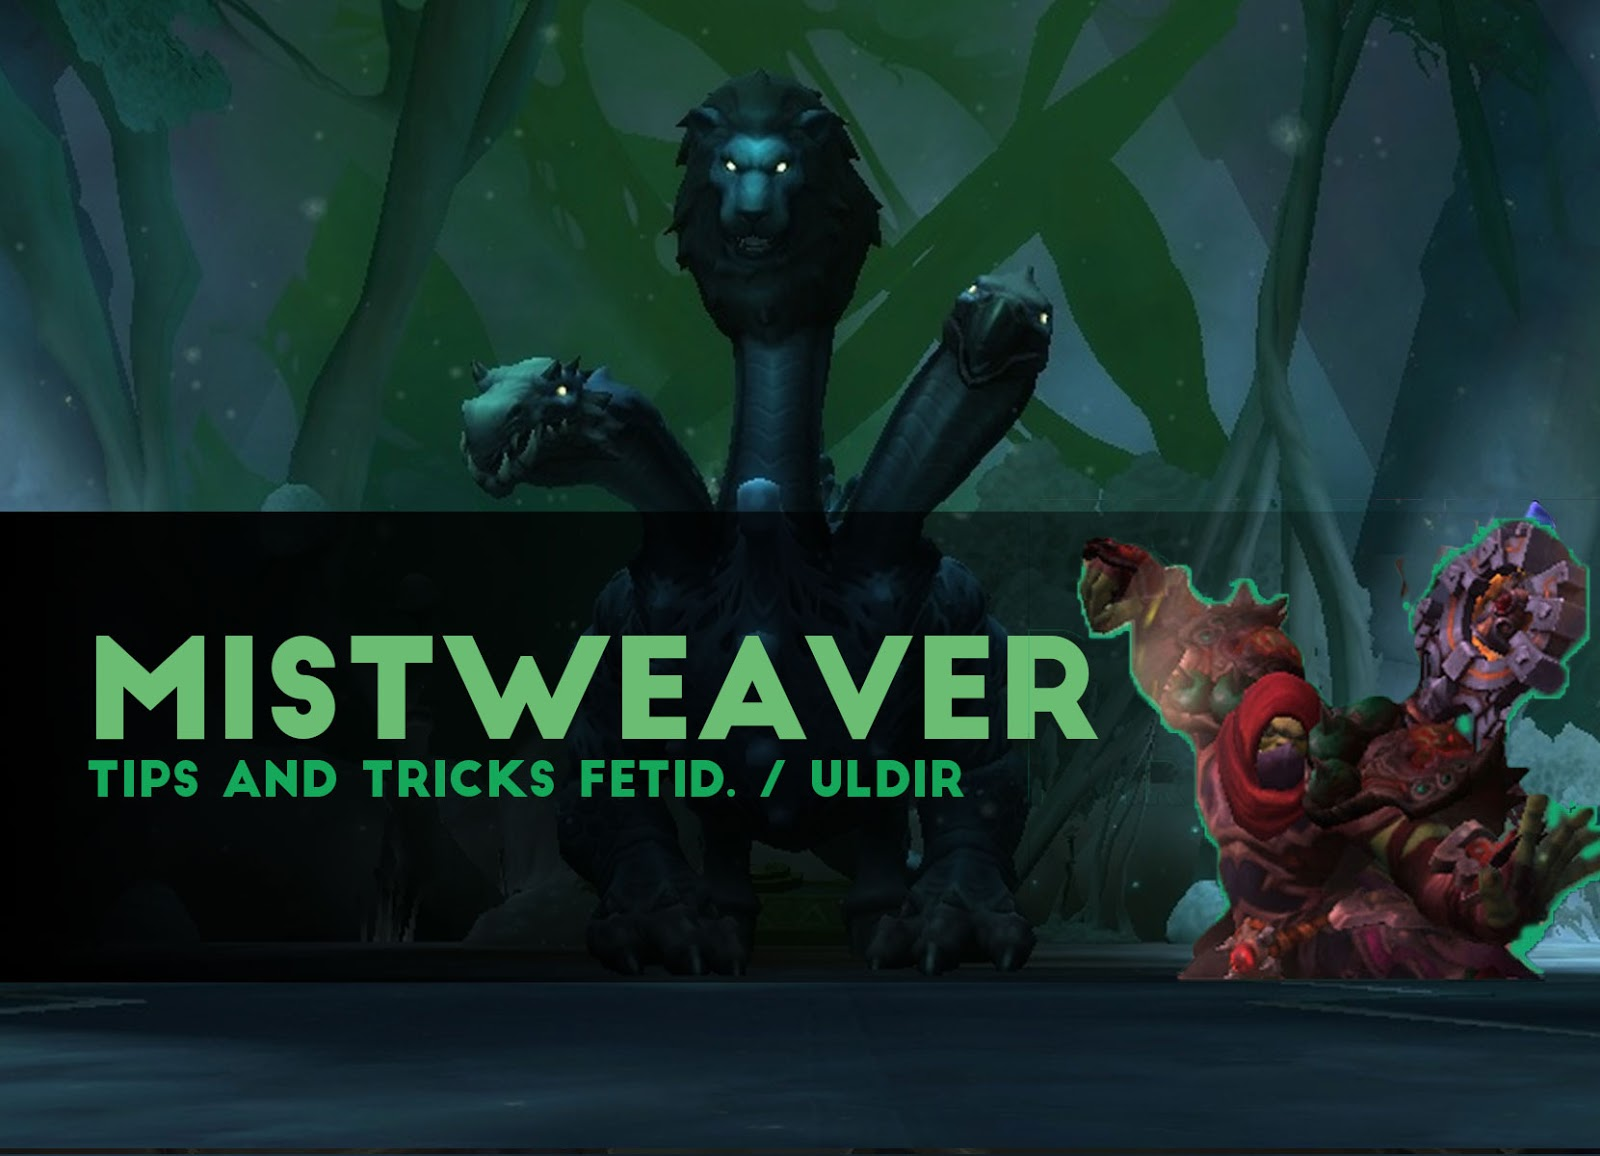 Mistweaver Tips and Tricks Fetid Devourer / ULDIR - Patch 8.0